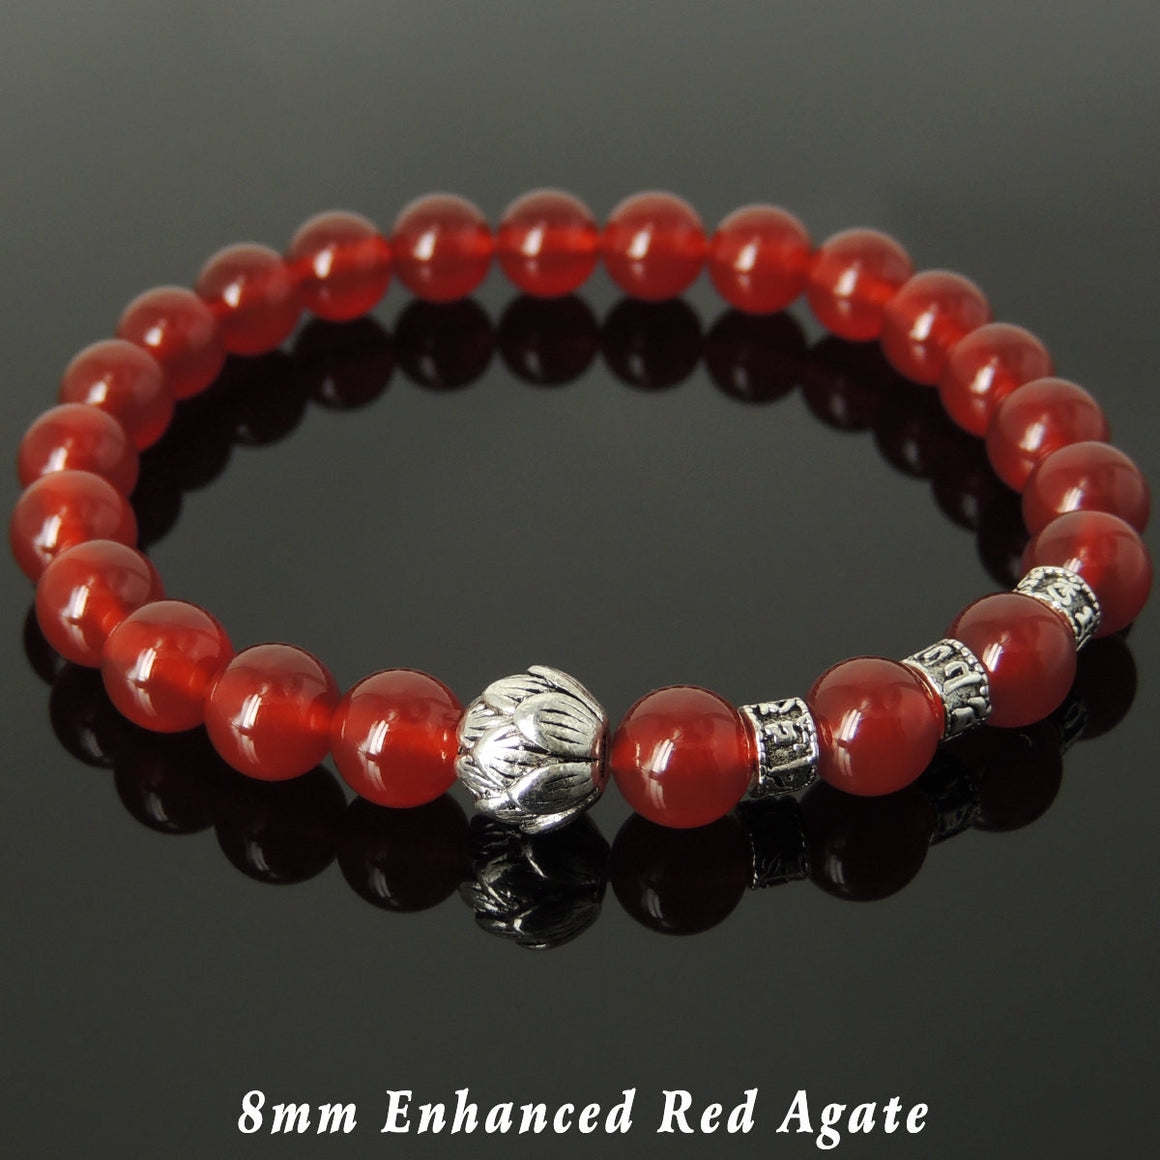 8mm Red Agate Healing Gemstone Bracelet with Tibetan Silver Lotus Bead & OM Meditation Spacer Beads - Handmade by Gem & Silver TSB329